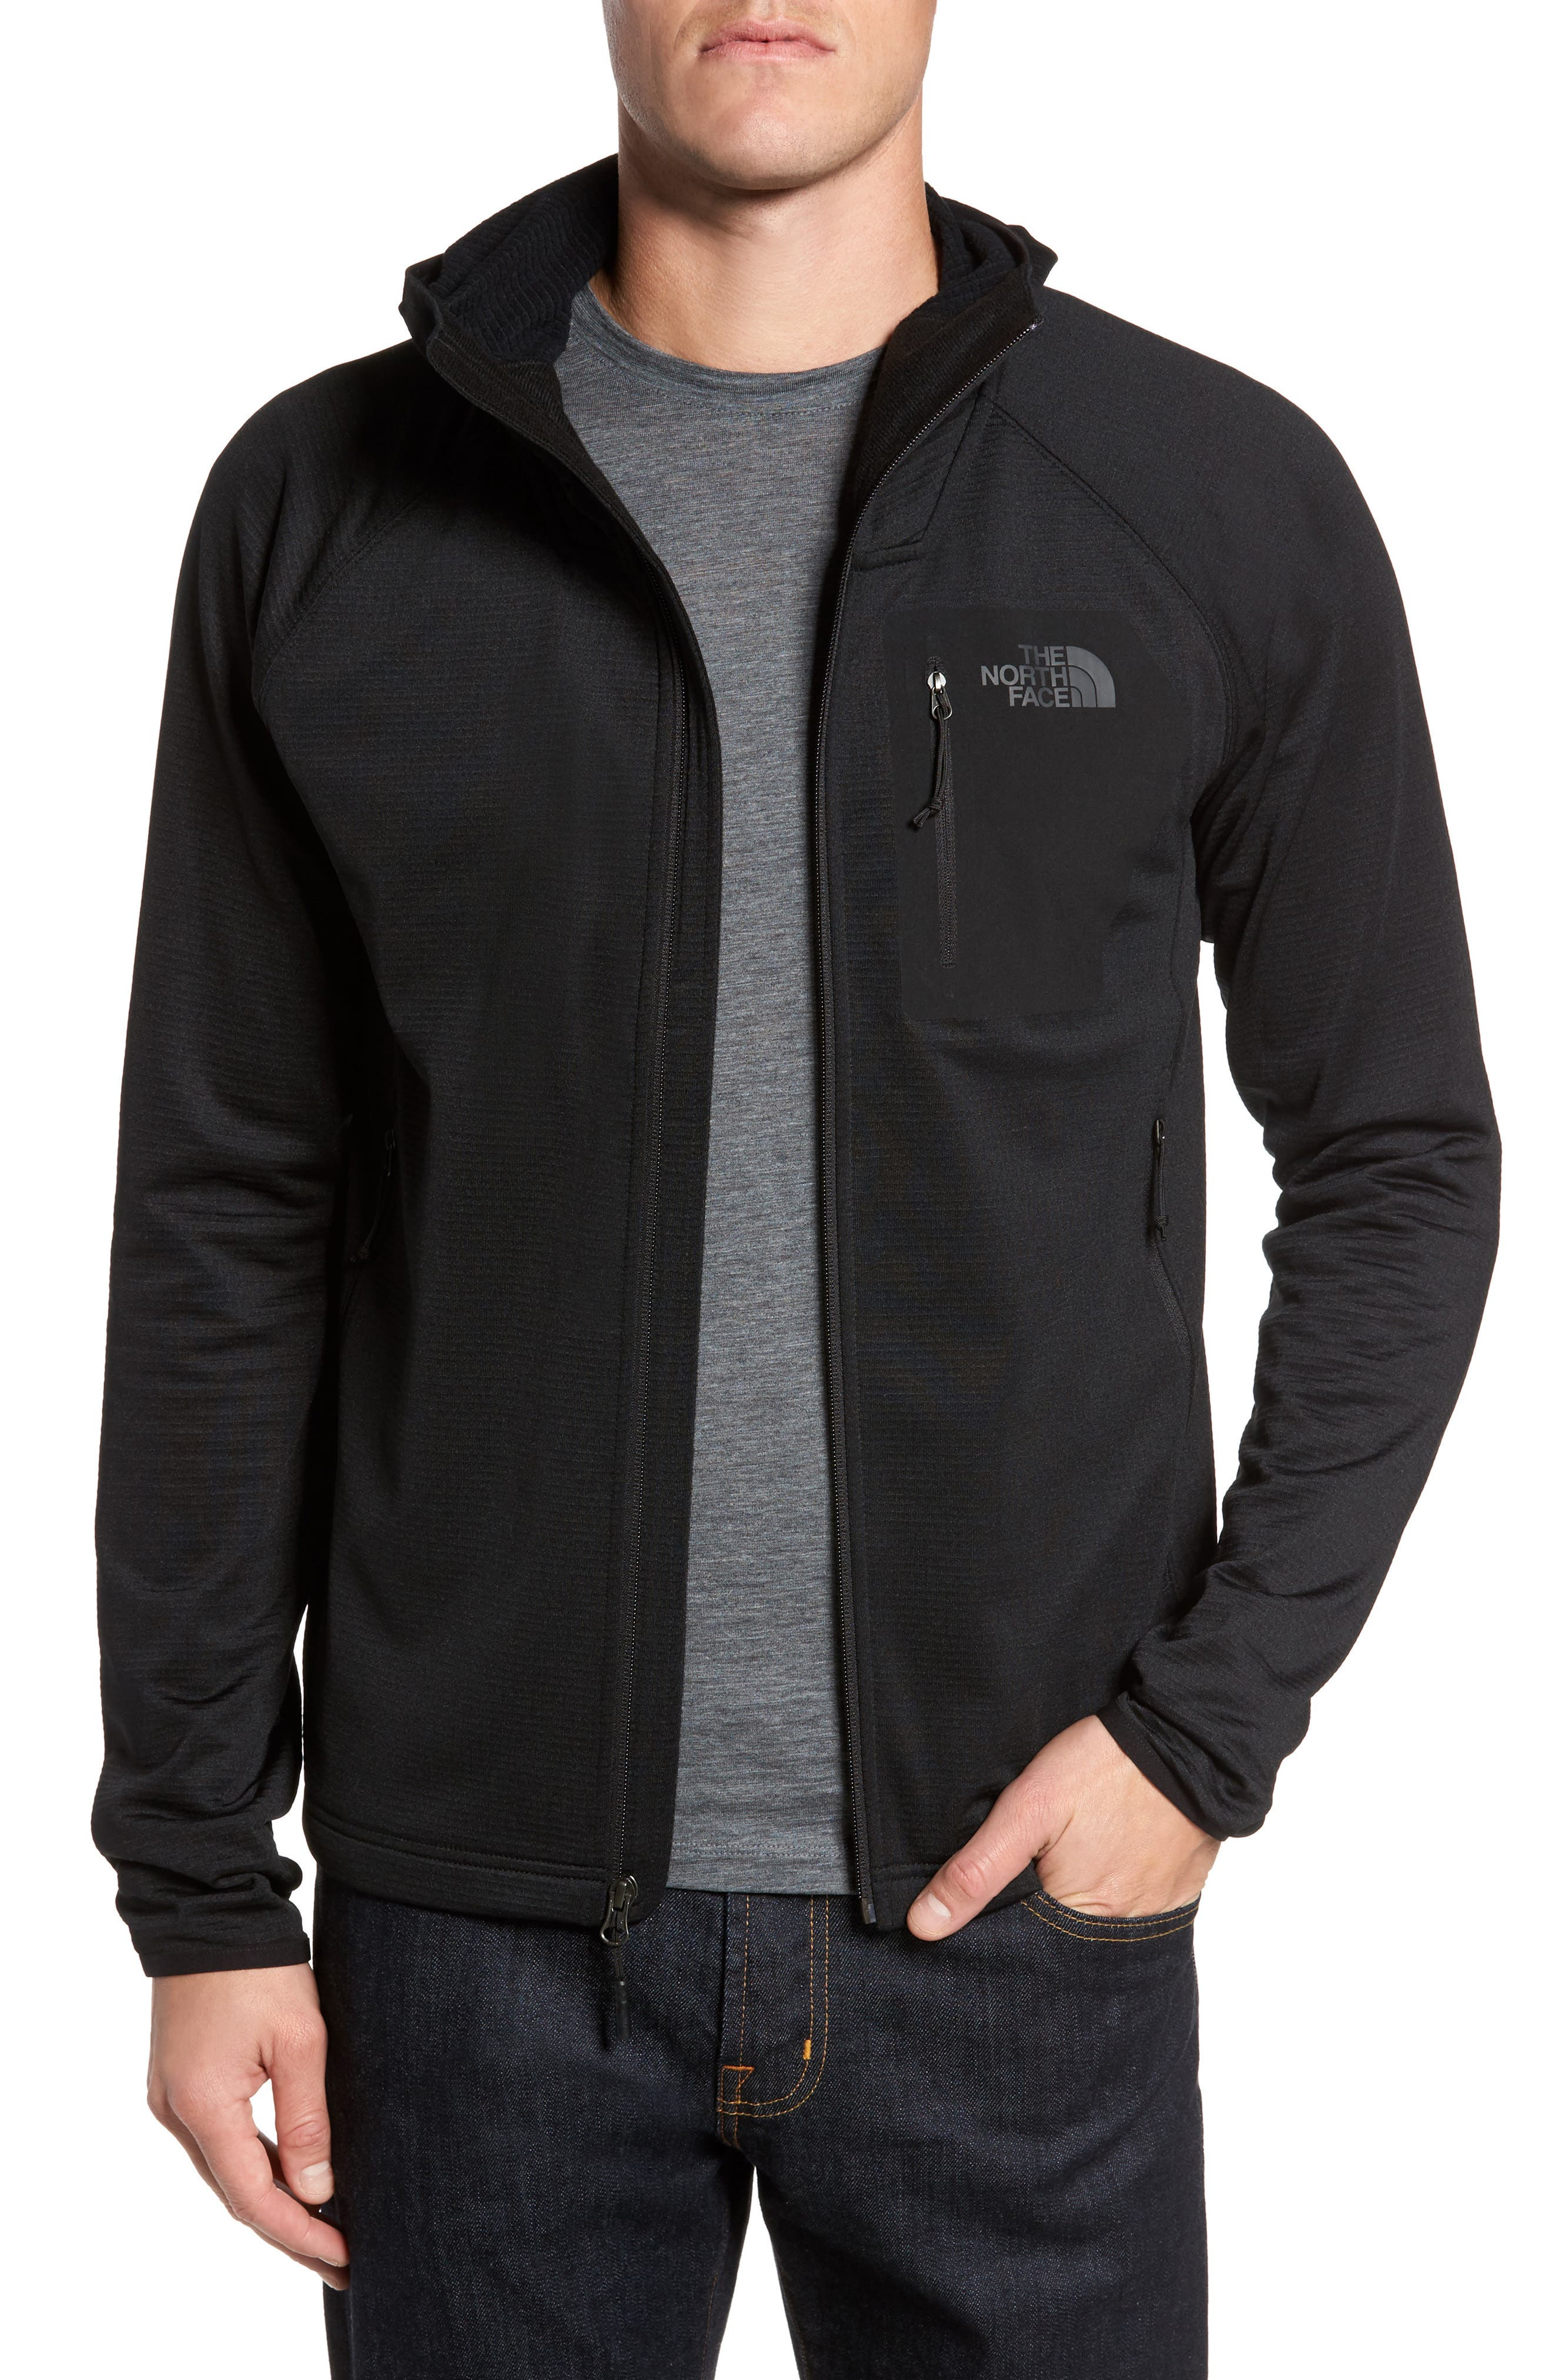 Borod Zip Fleece Jacket by The North Face